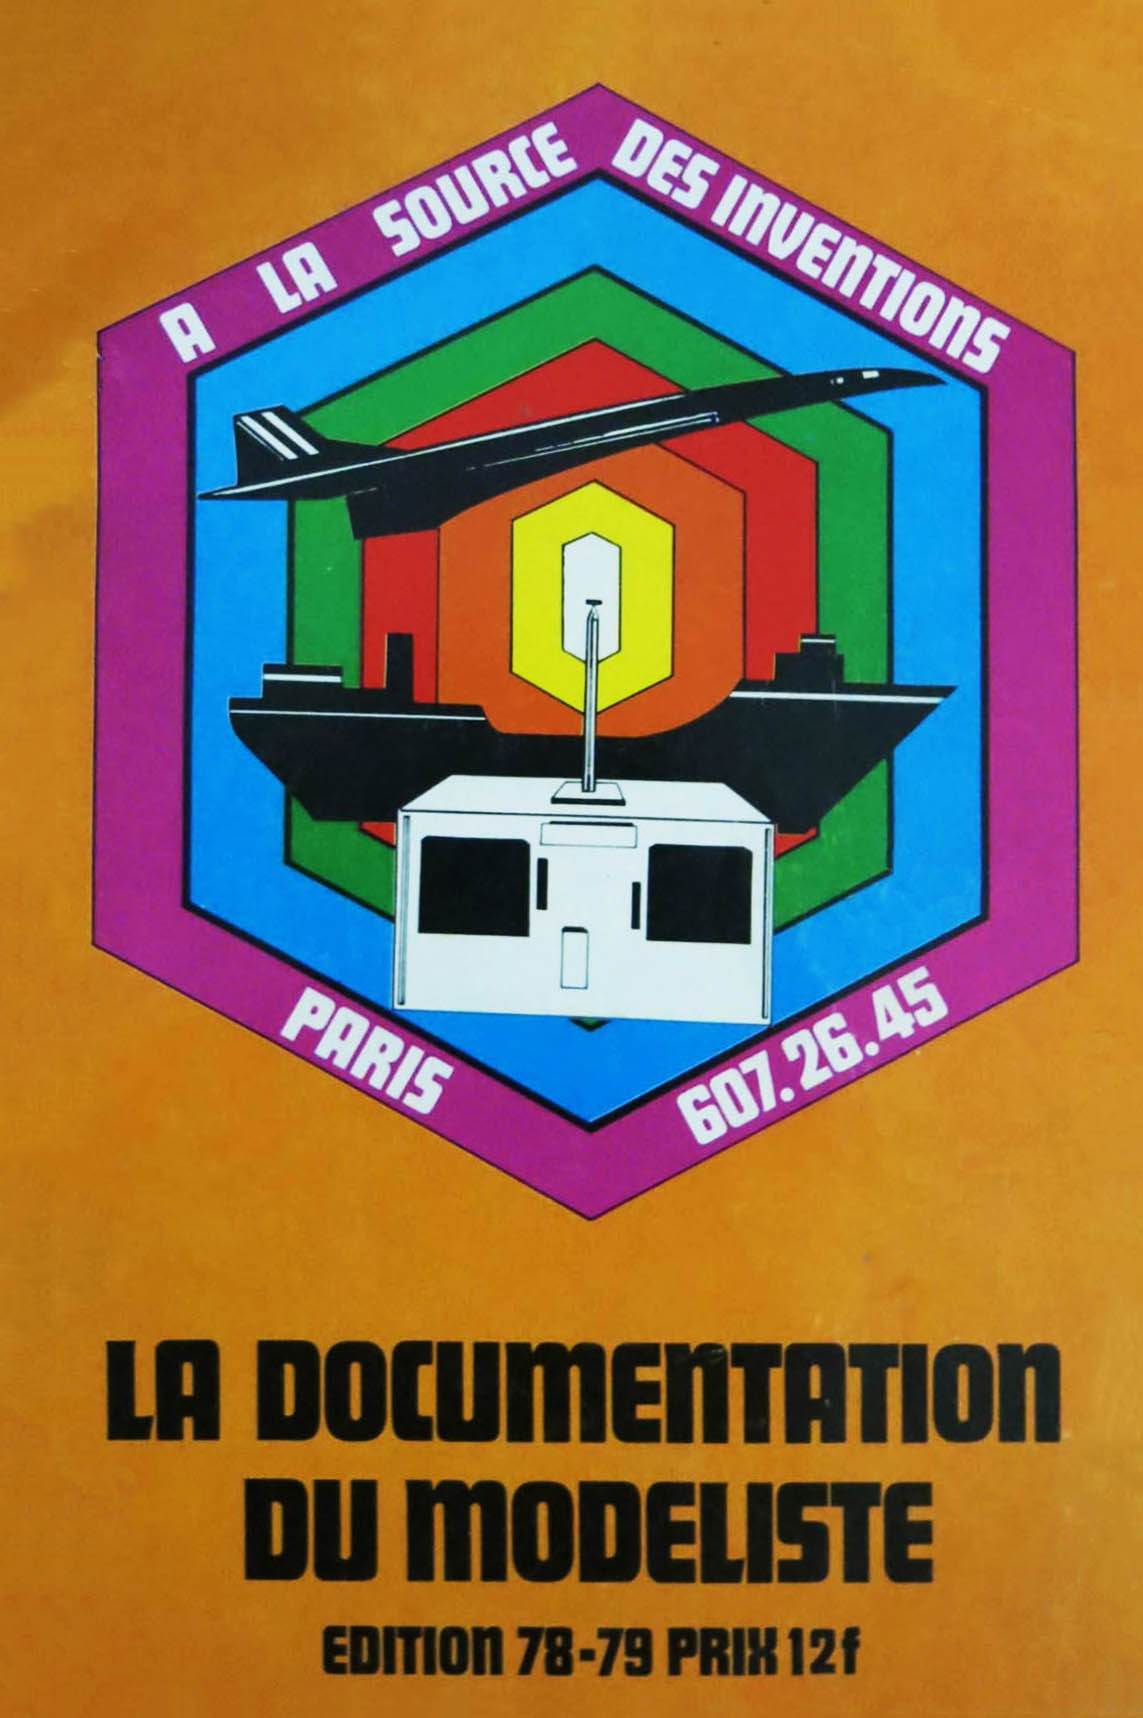 A la source des inventions, la documentation du modéliste